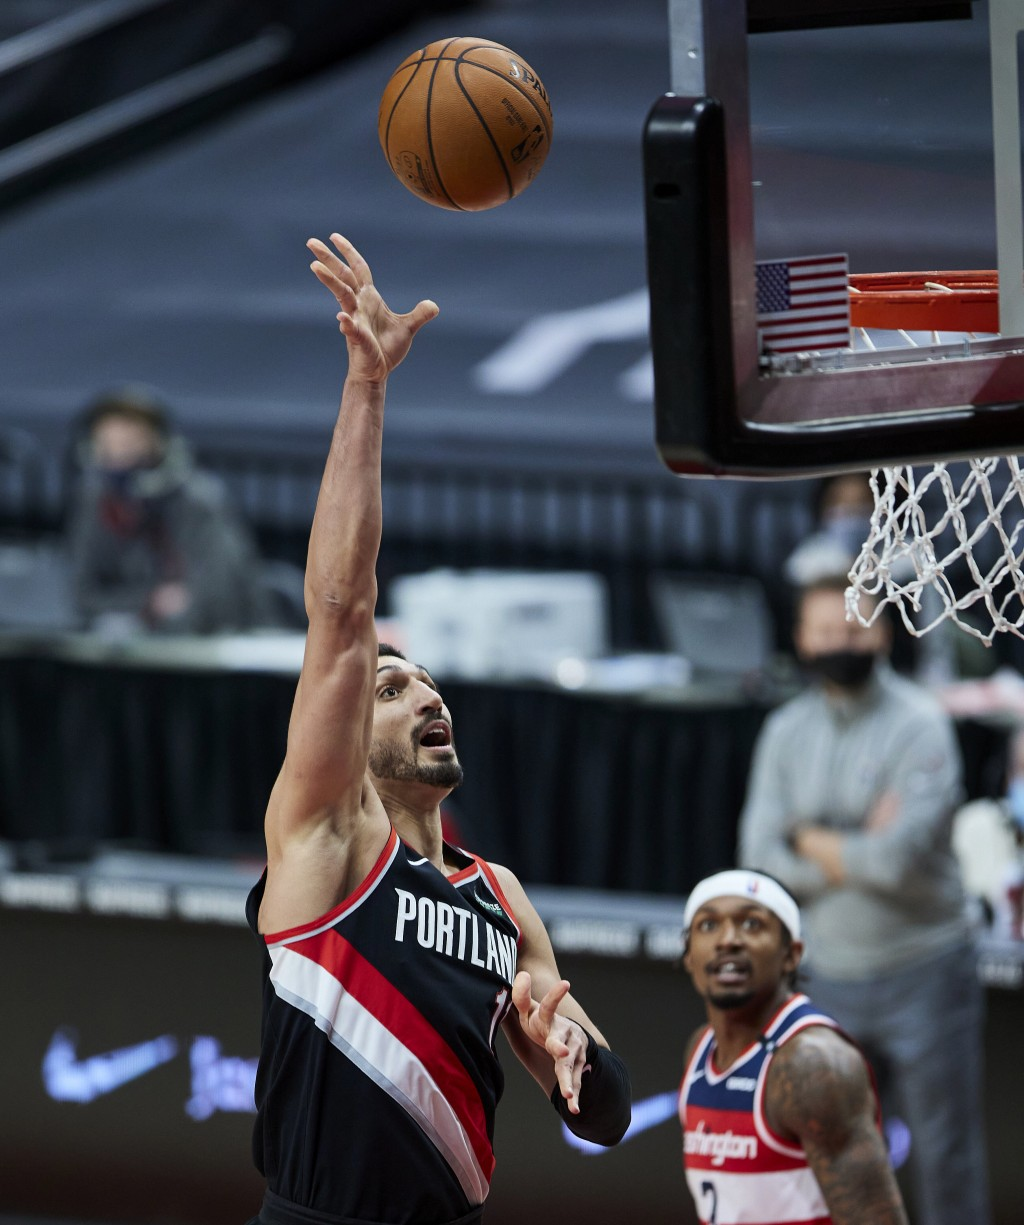 Portland Trail Blazers center Enes Kanter shoots against the Washington Wizards during the second half of an NBA basketball game in Portland, Ore., Sa...